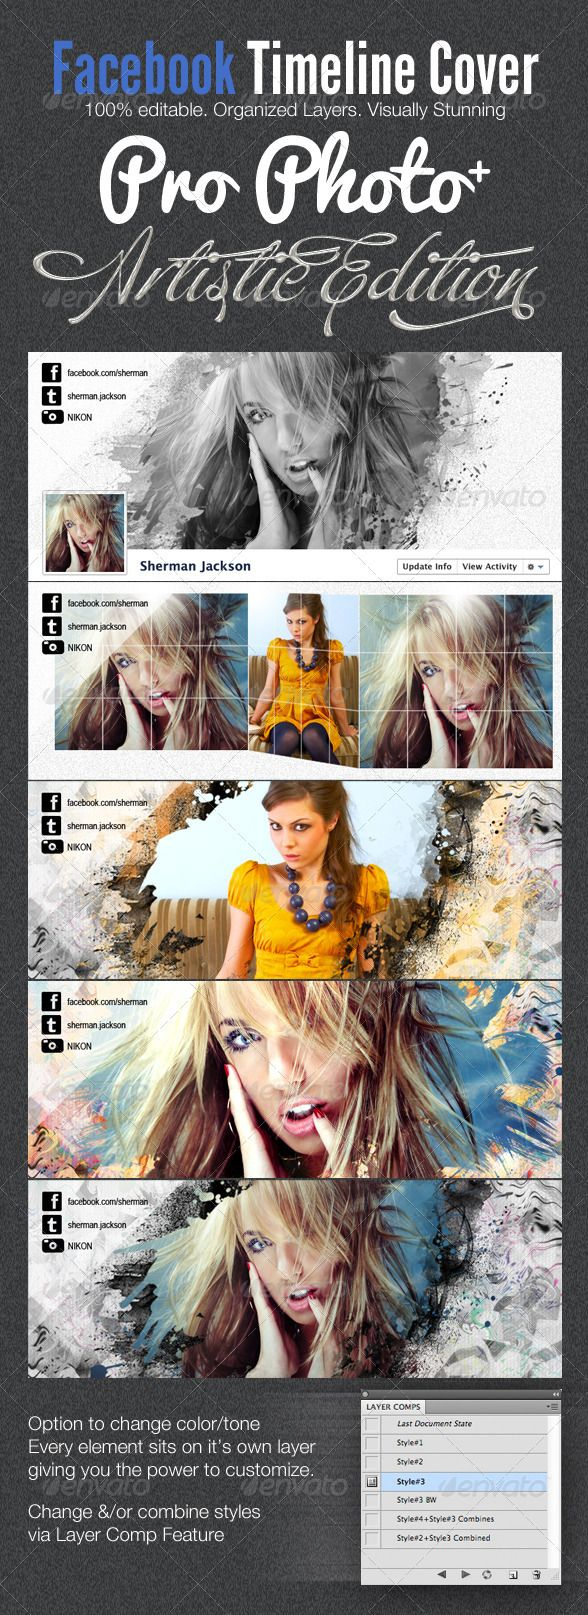 Visually Stunning Facebook covers – ProPhoto 2 + Artistic Facebook Timeline Cover Templates. http://startupstacks.com/print-templates/prophoto-artistic-facebook-timeline-cover-template.html - free download